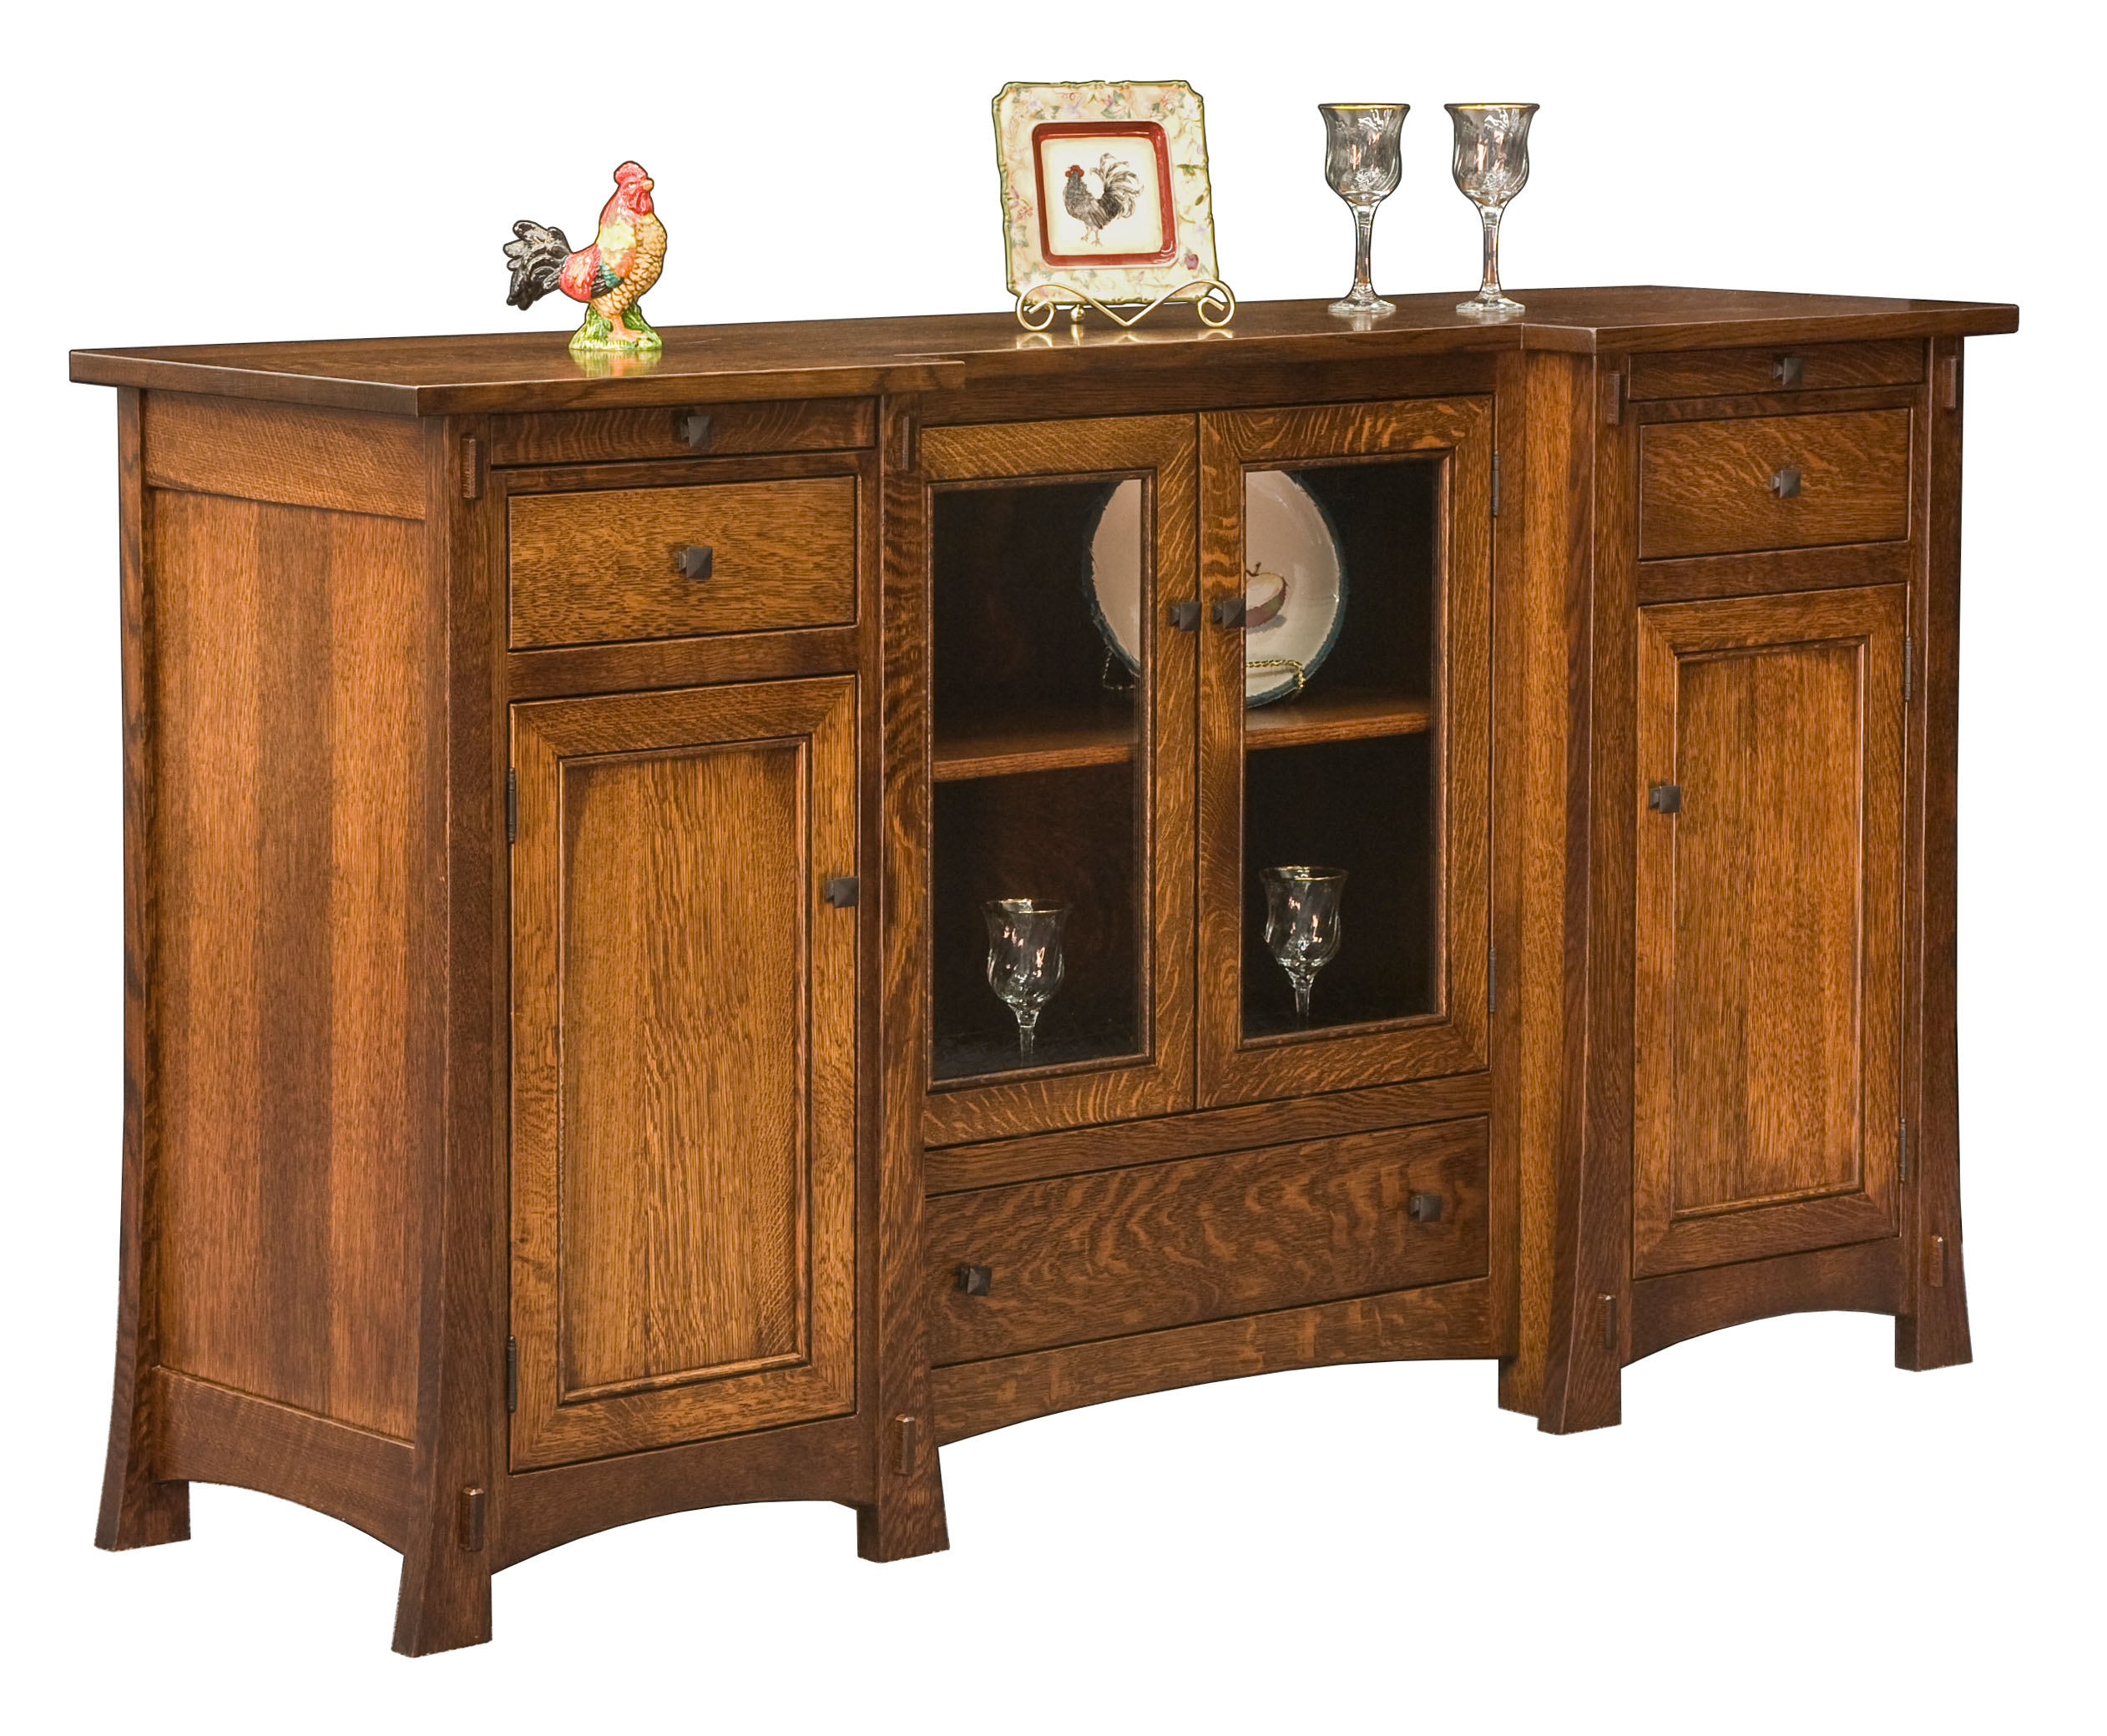 Buffet with Wine Rack | Buffets and Sideboards | Mirrored Sideboards and Buffets